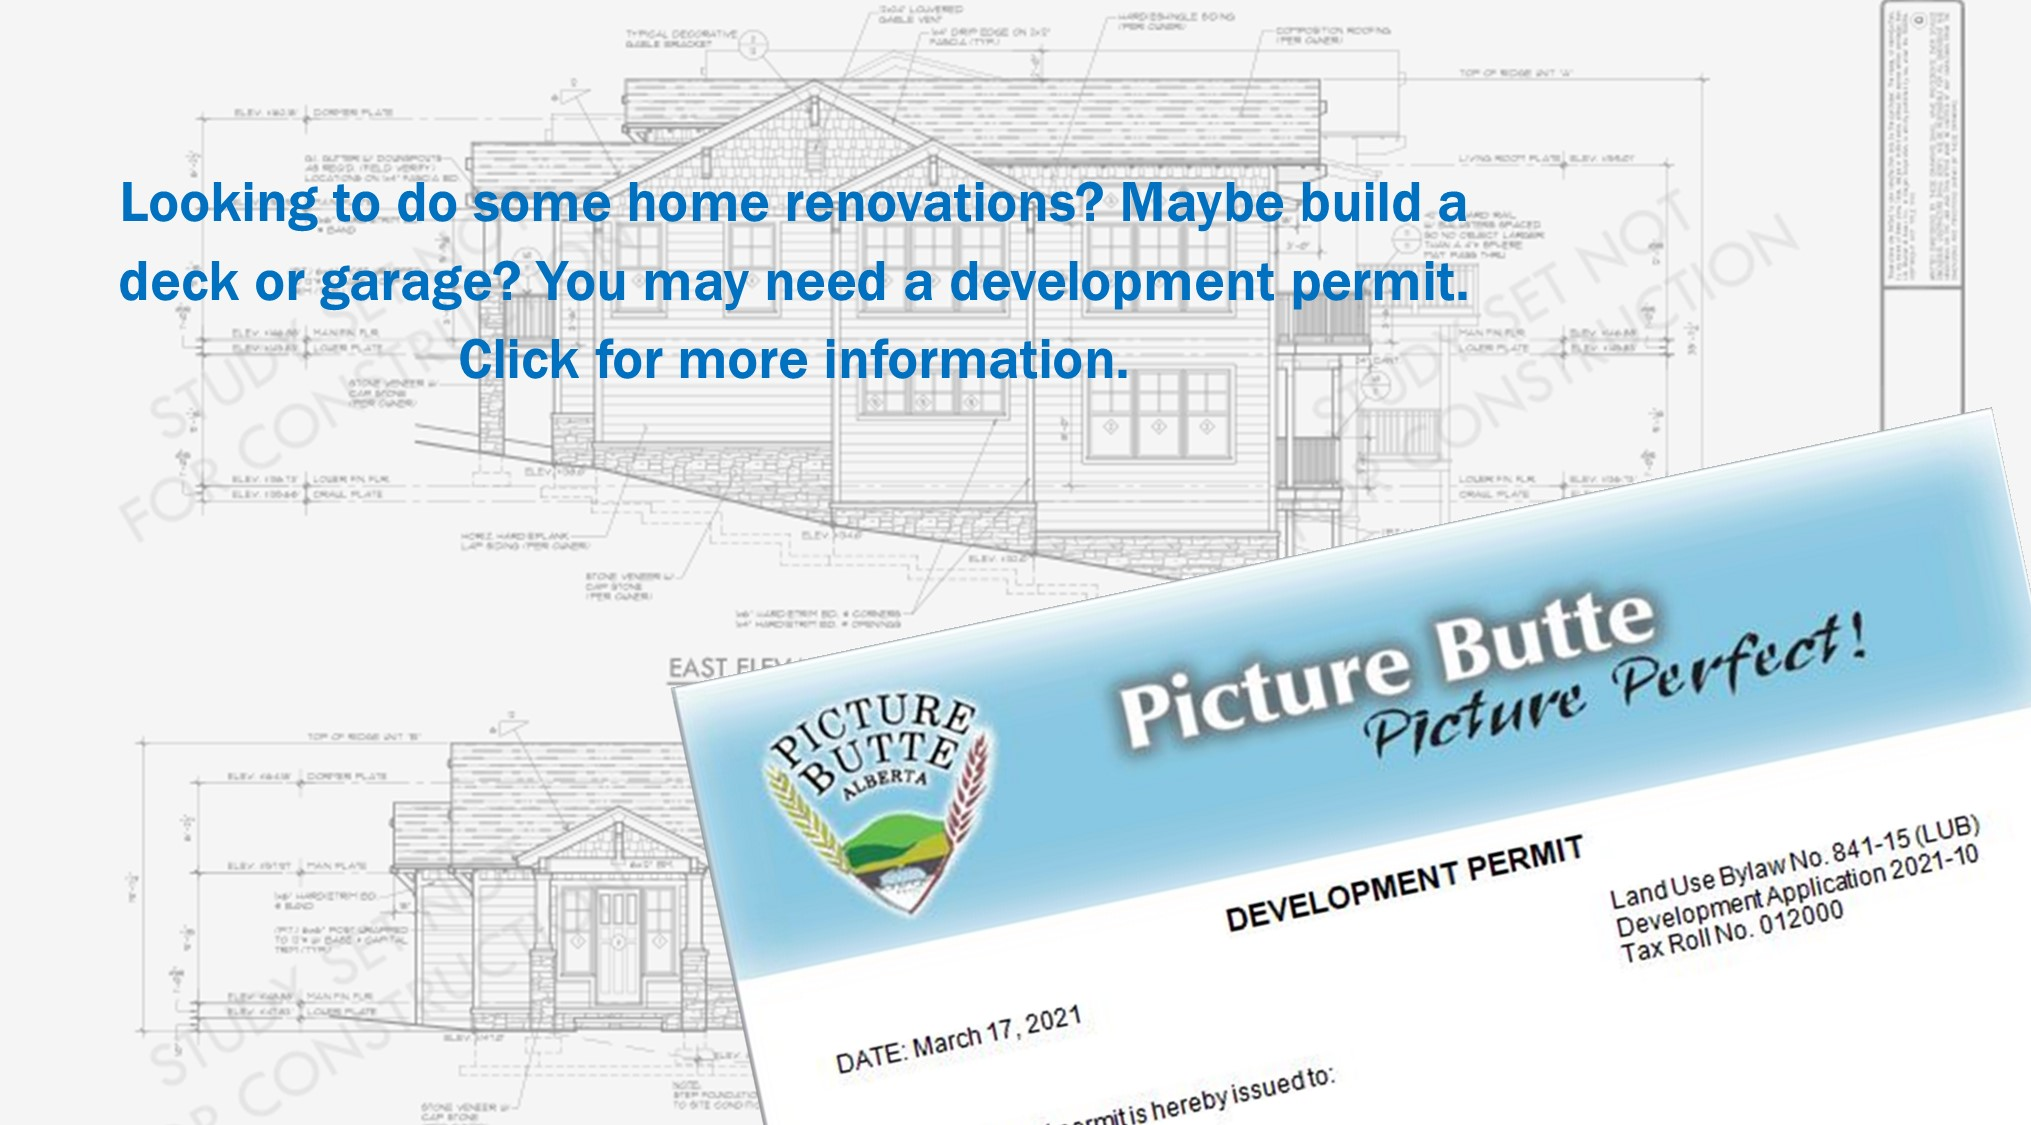 <div id=slideshow_title>Development Permits</div> <br>Development permits are needed for any structural changes or new builds. Click to see if you require a permit for your development.